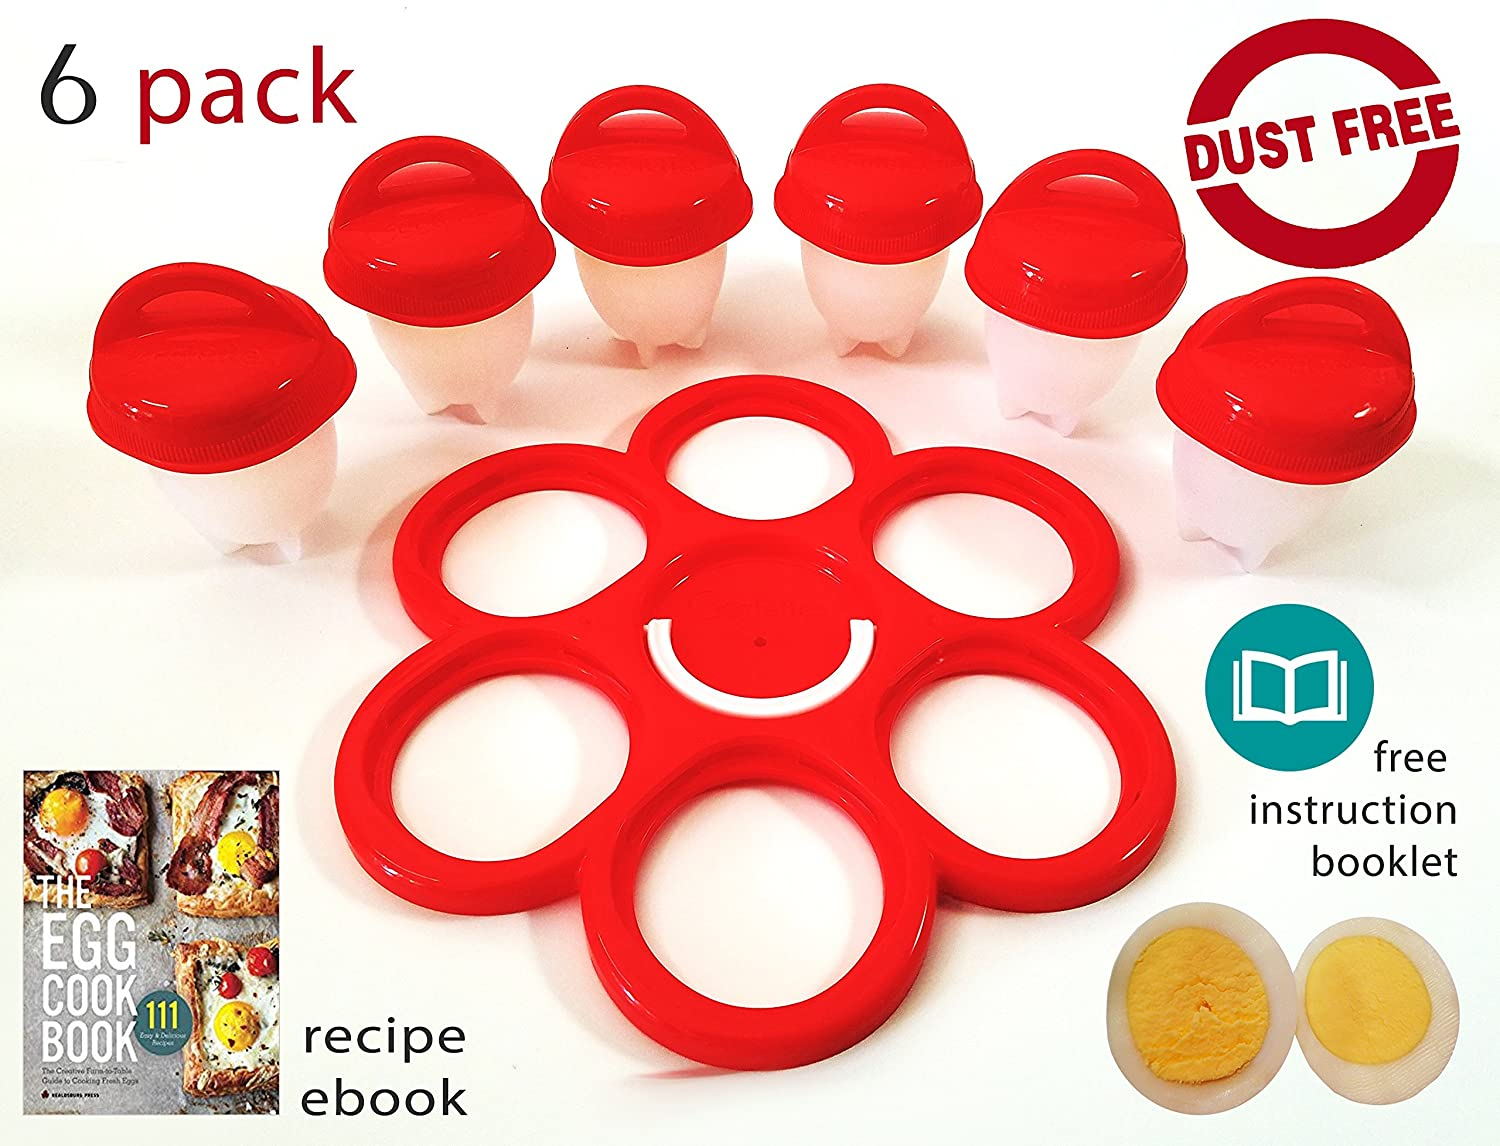 Shaliyan Egg Cooker-6 Pack 6 Exclusively and Holder 6 Nonstick Silicone Seen on TV Hard Boiler Poache, Standard, White/Red Perfectostore Egglets Egg Cooker - 6 Pack